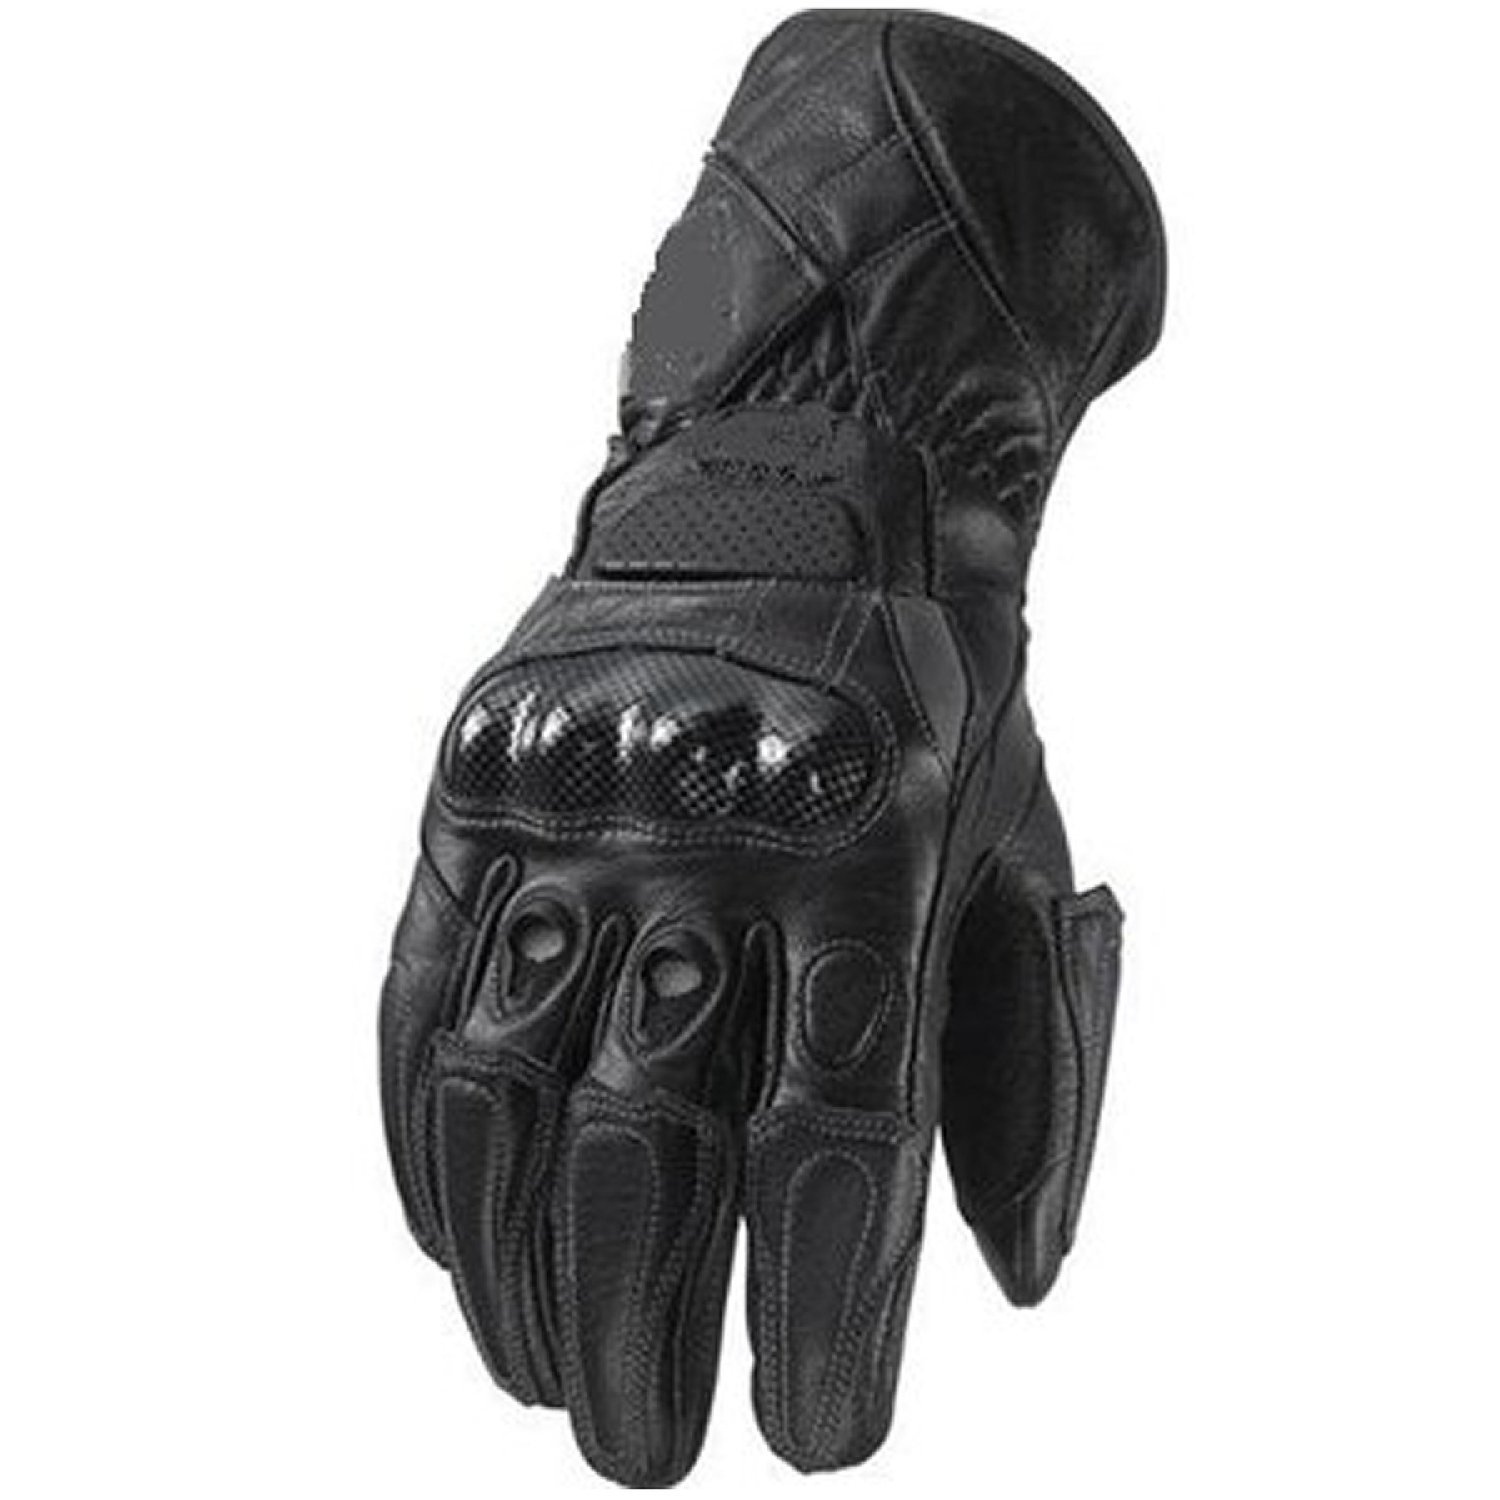 Motorcycle leather gloves amazon - New Biker Cowhide Leather Motorbike Motorcycle Heavy Duty Waterproof Gloves Collection B3d Medium Amazon Co Uk Clothing